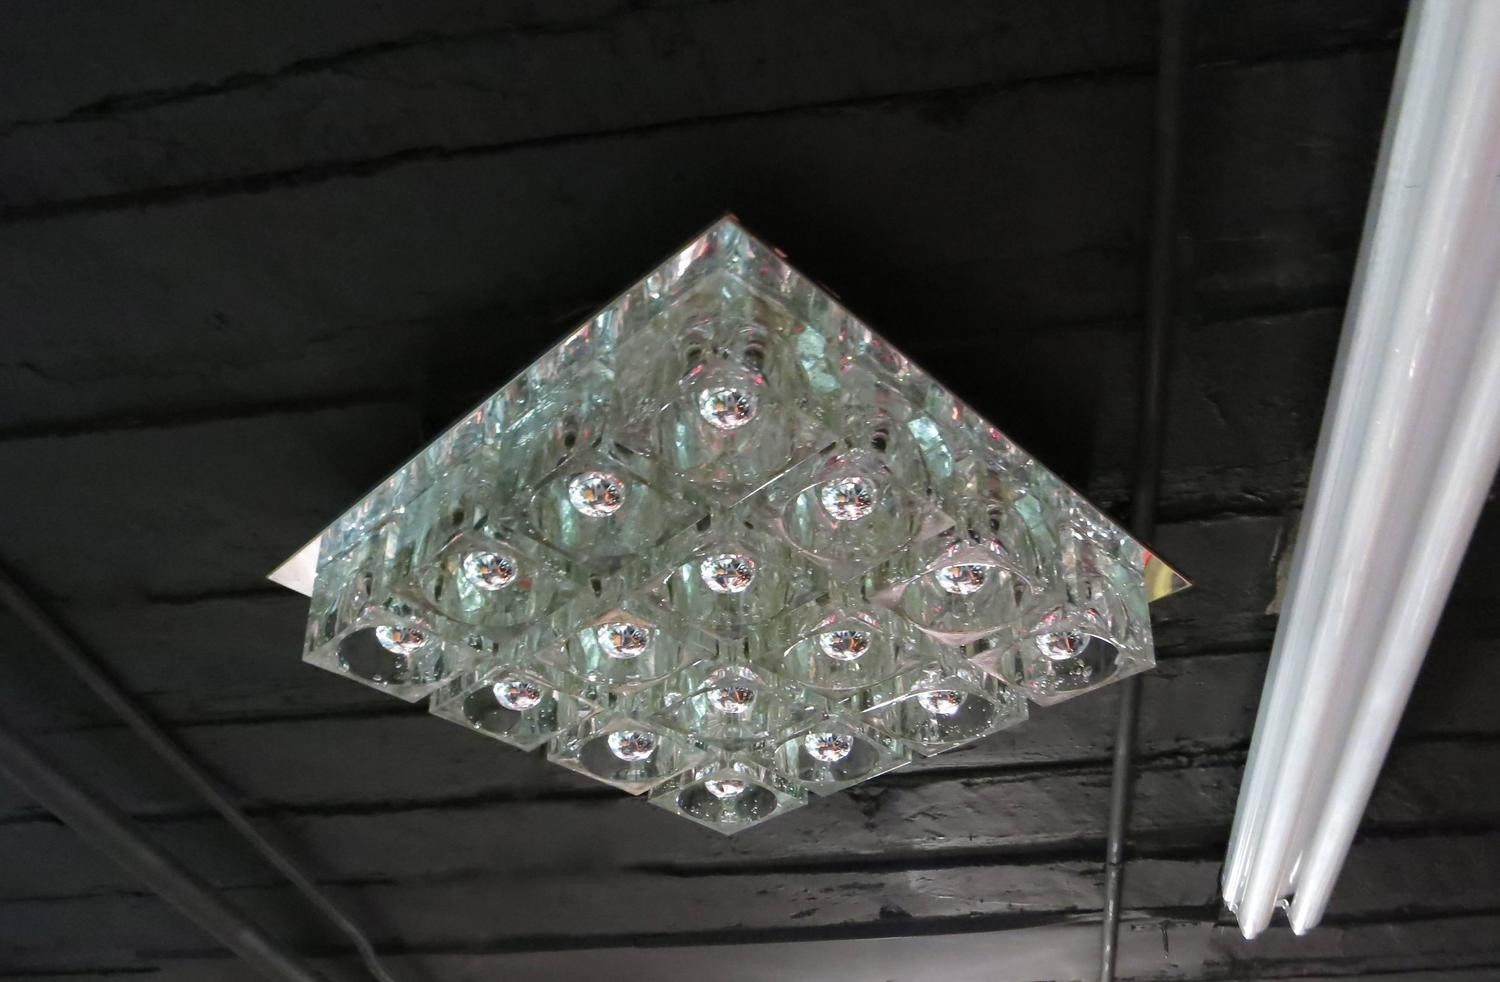 Pair Of Lights 16 Glass Blocks Each By Lightolier Circa 1975 Made In Usa For Sale At 1stdibs